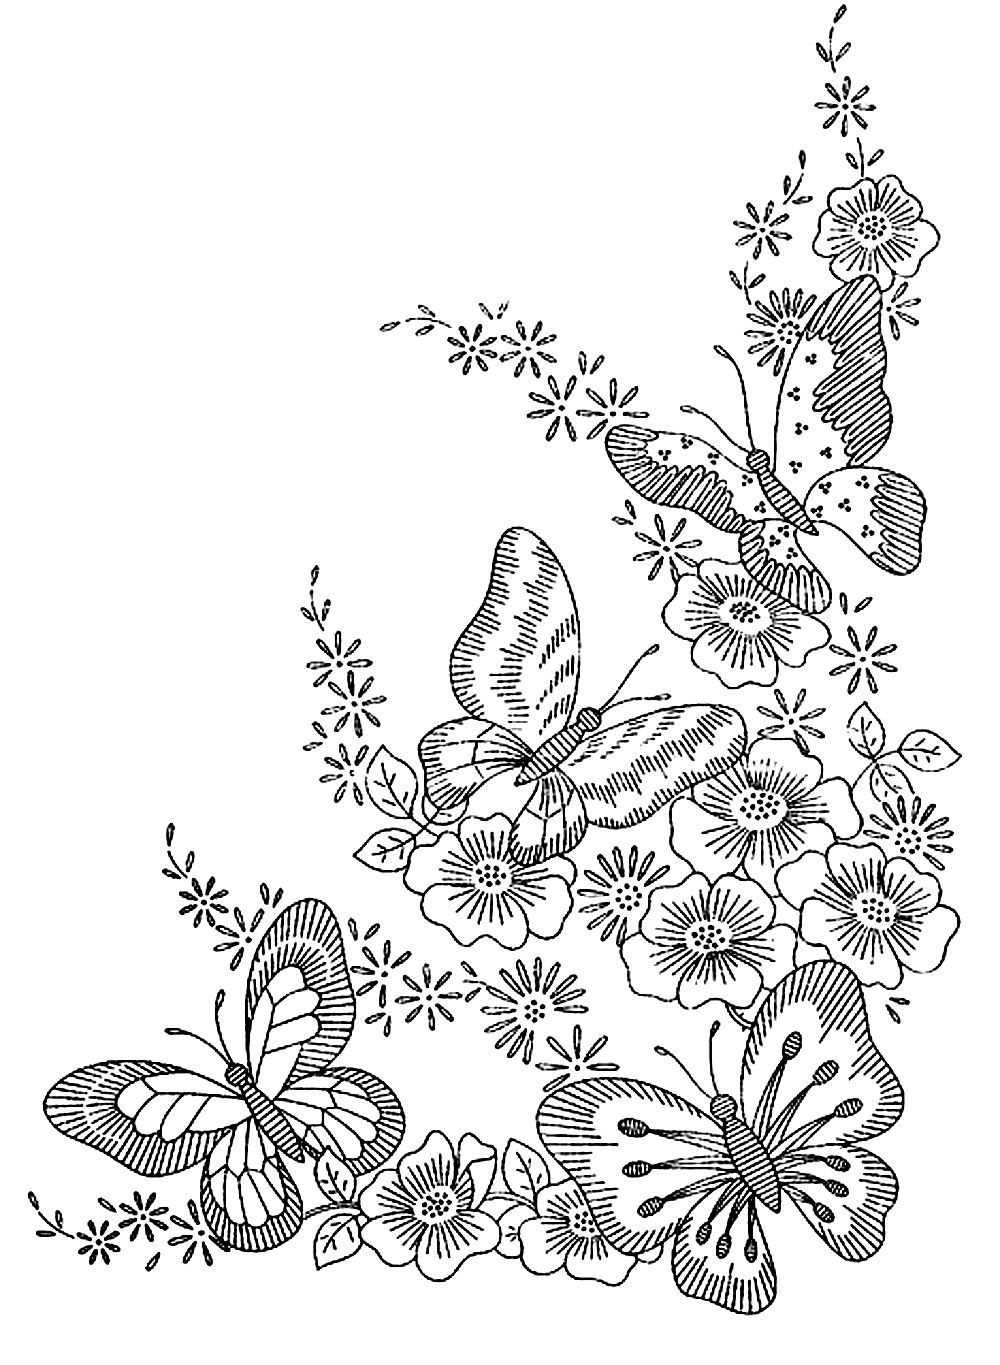 Butterflies Four Butterflies And Flowers Just Perfect Harmony From The Gallery Insects Just Butterfly Coloring Page Flower Coloring Pages Coloring Books